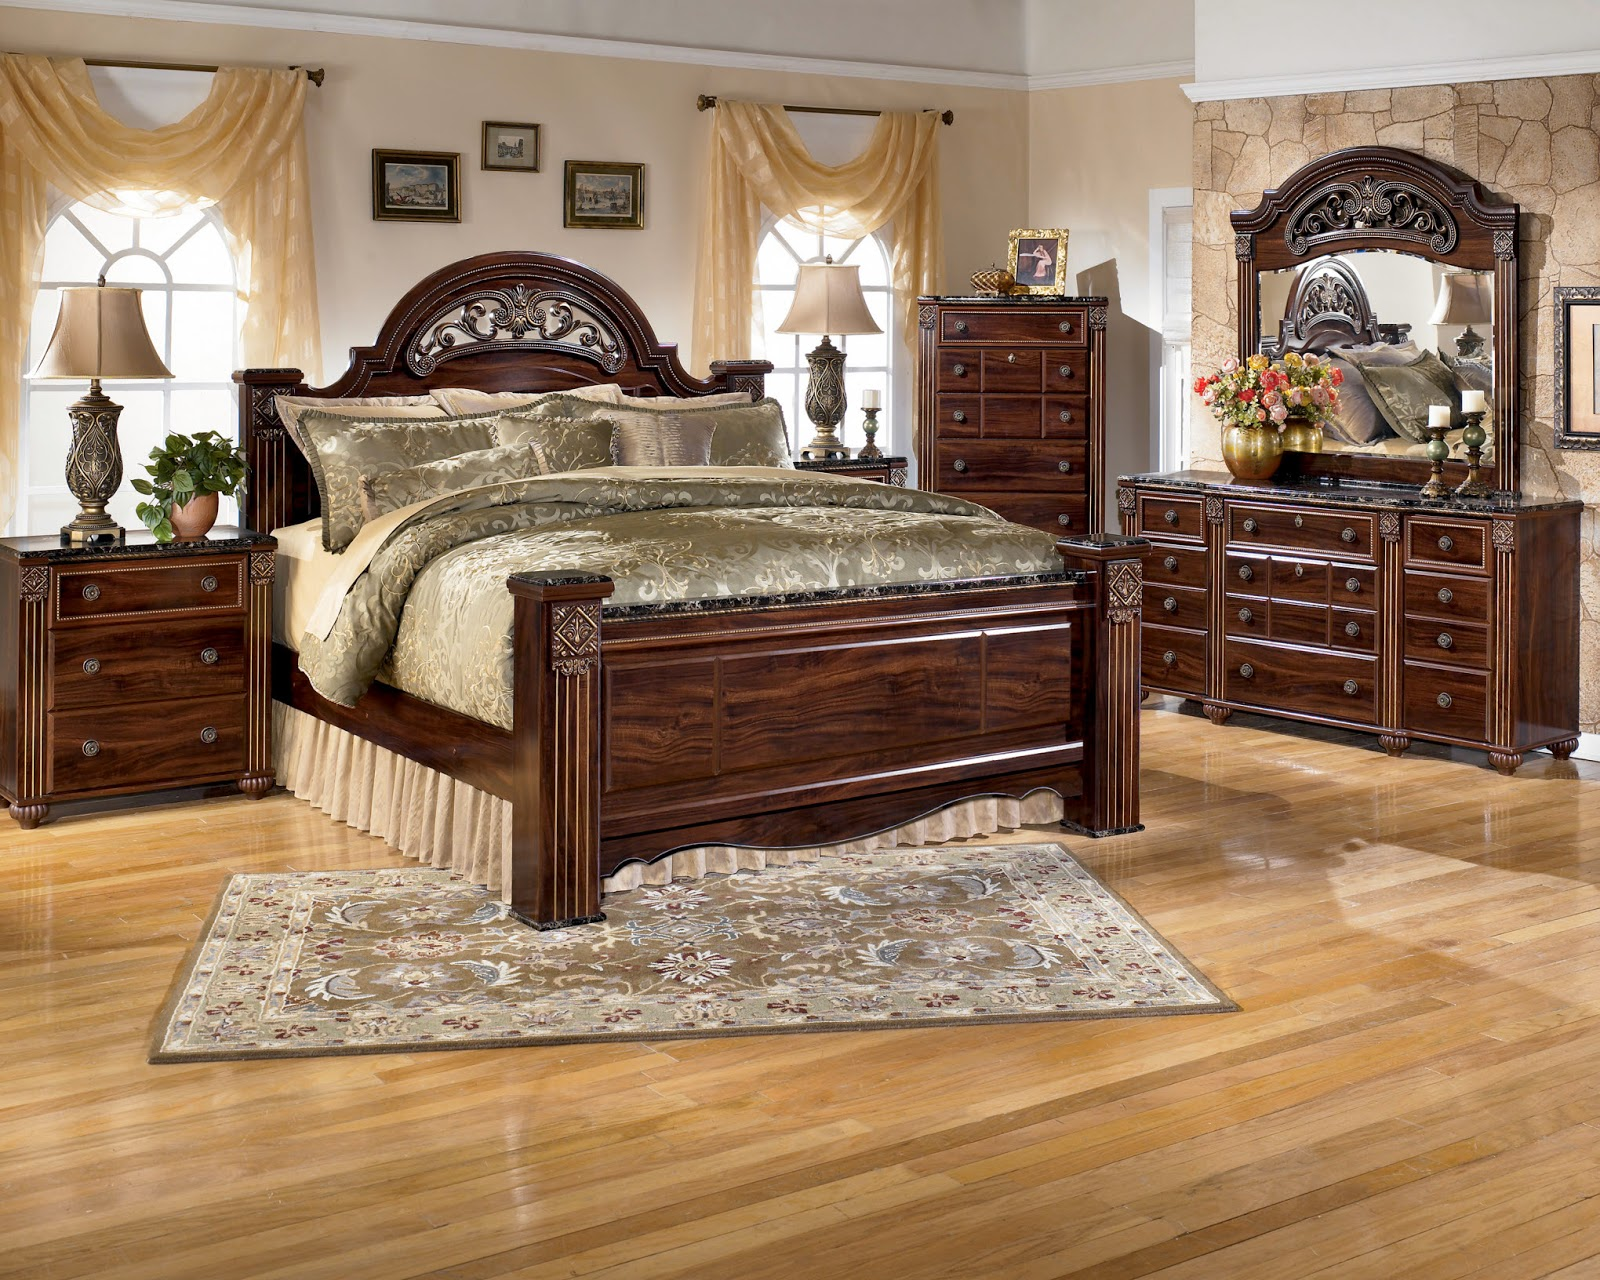 Ashley Furniture Bedroom Sets Sale Popular Interior